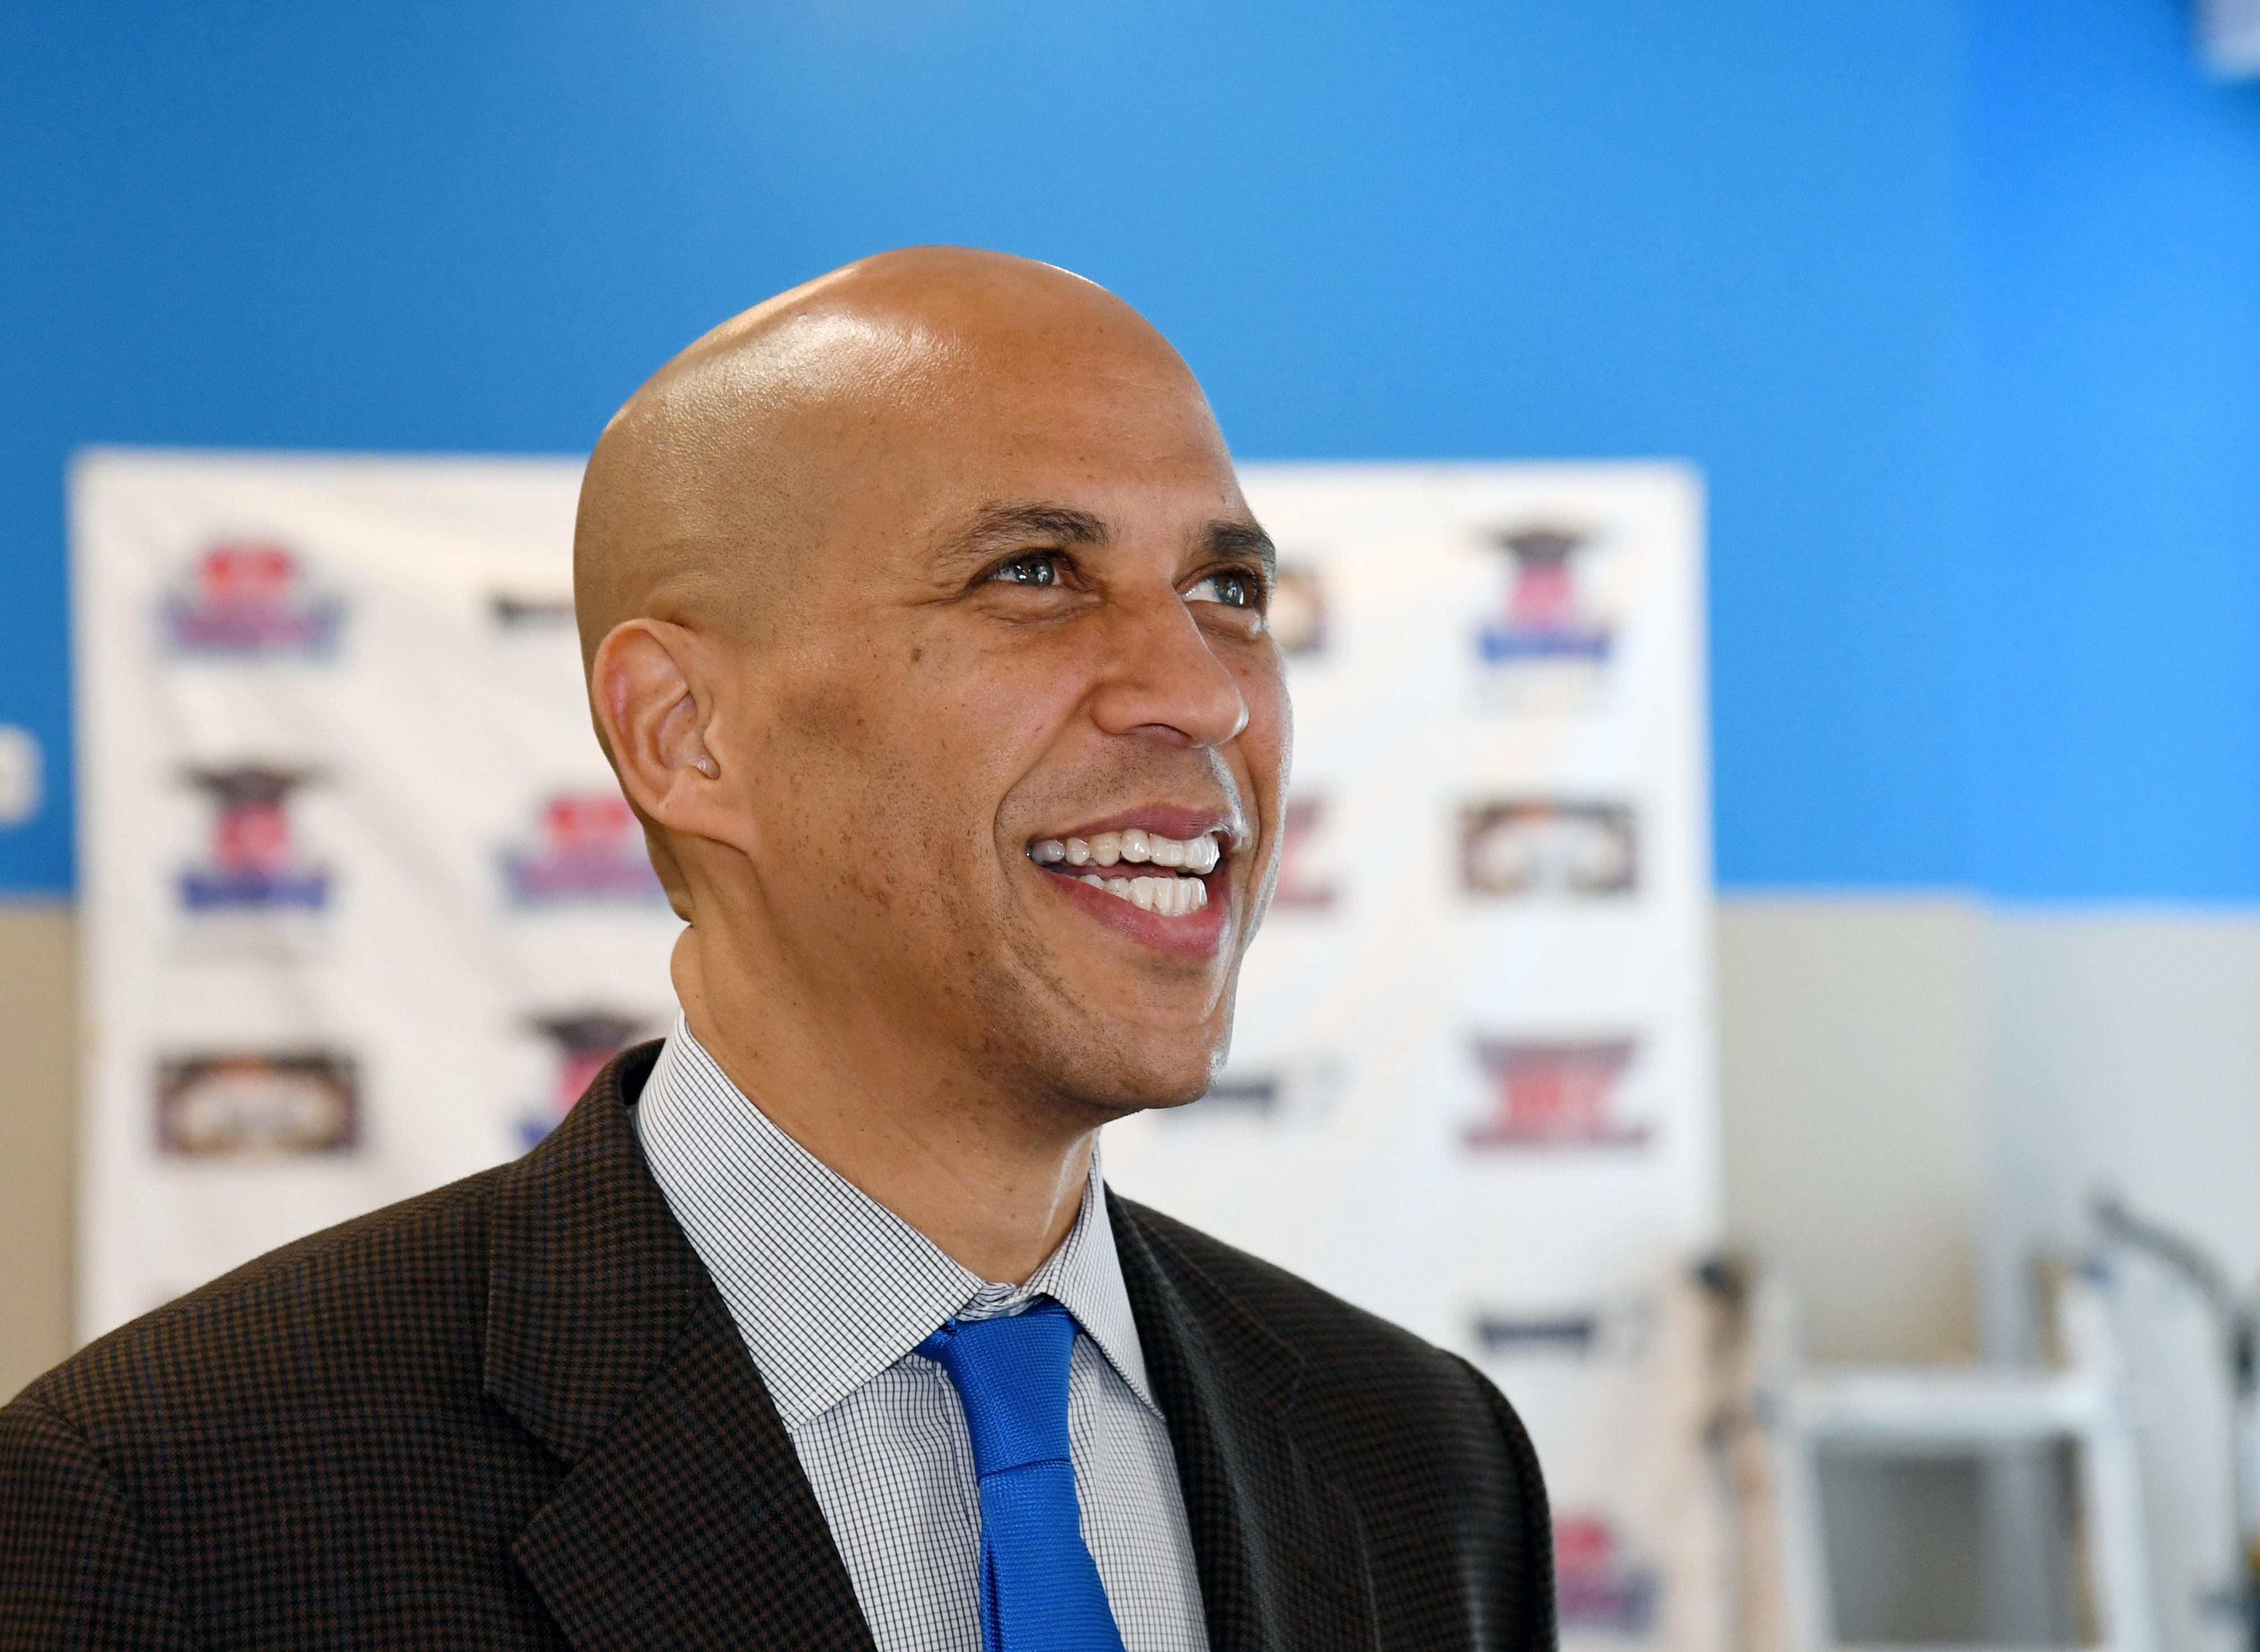 Cory Booker smiling.